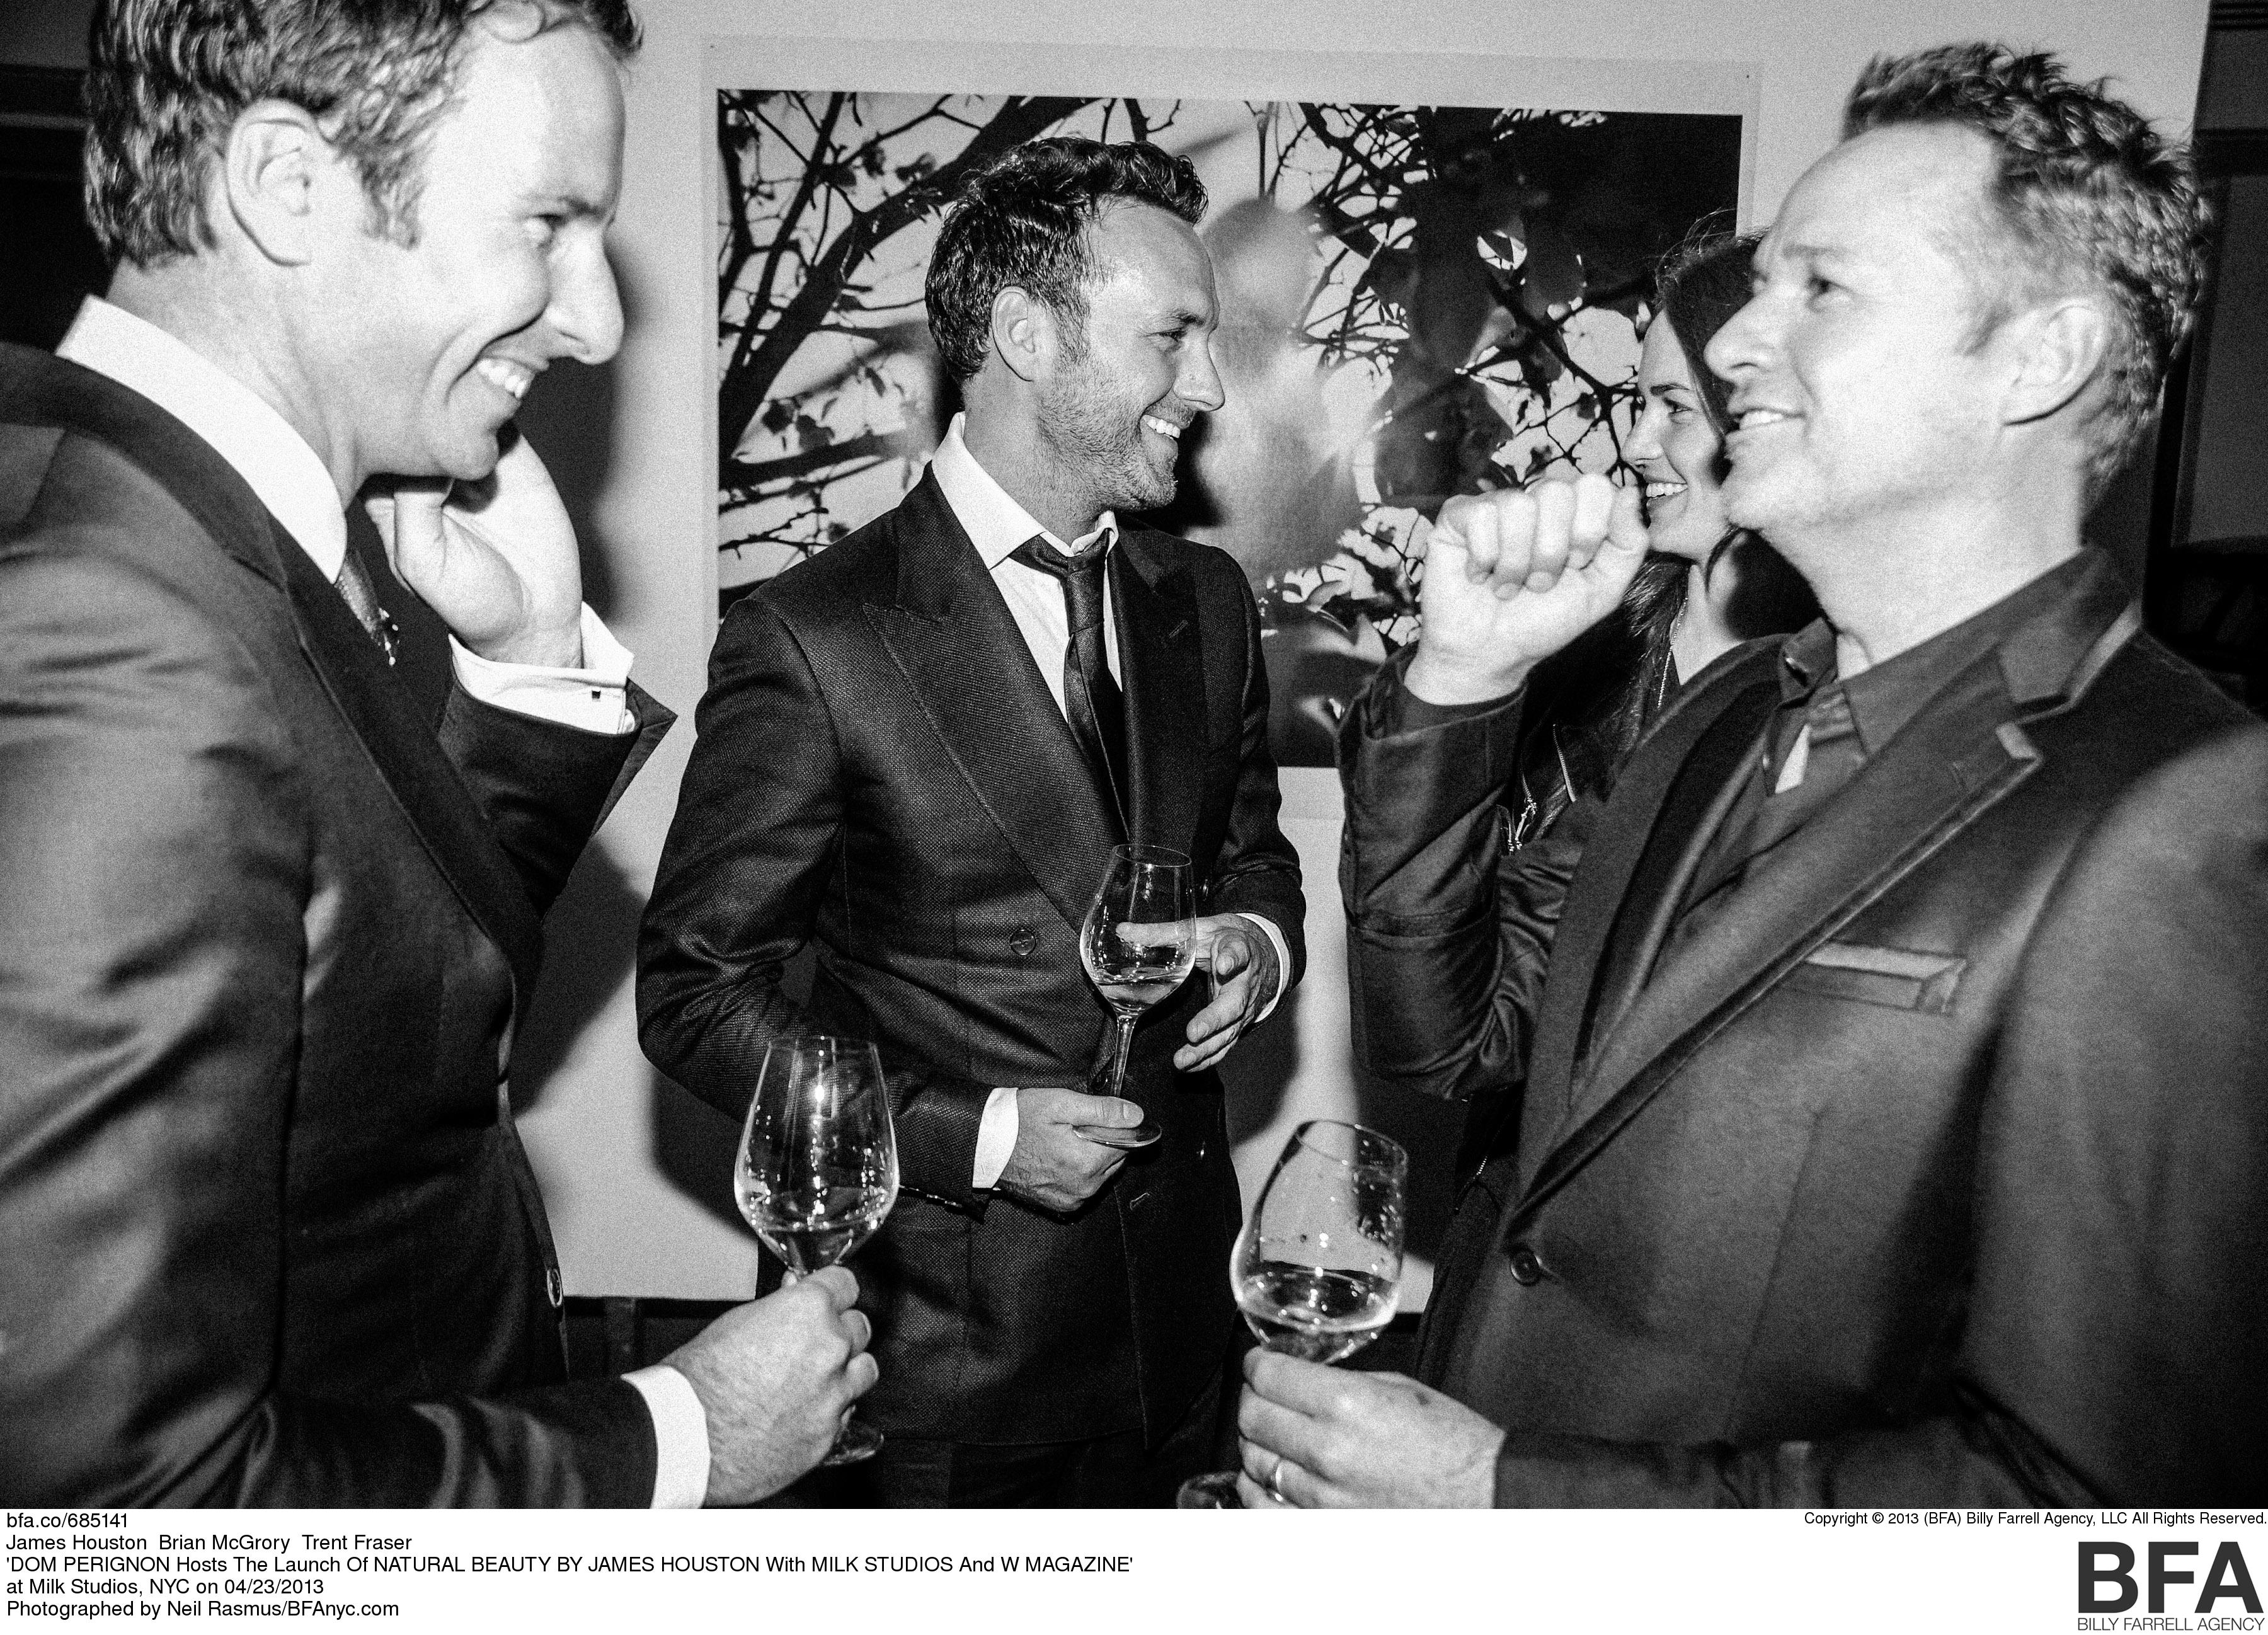 DOM PERIGNON Hosts The Launch Of NATURAL BEAUTY BY JAMES HOUSTON With MILK STUDIOS And W MAGAZINE